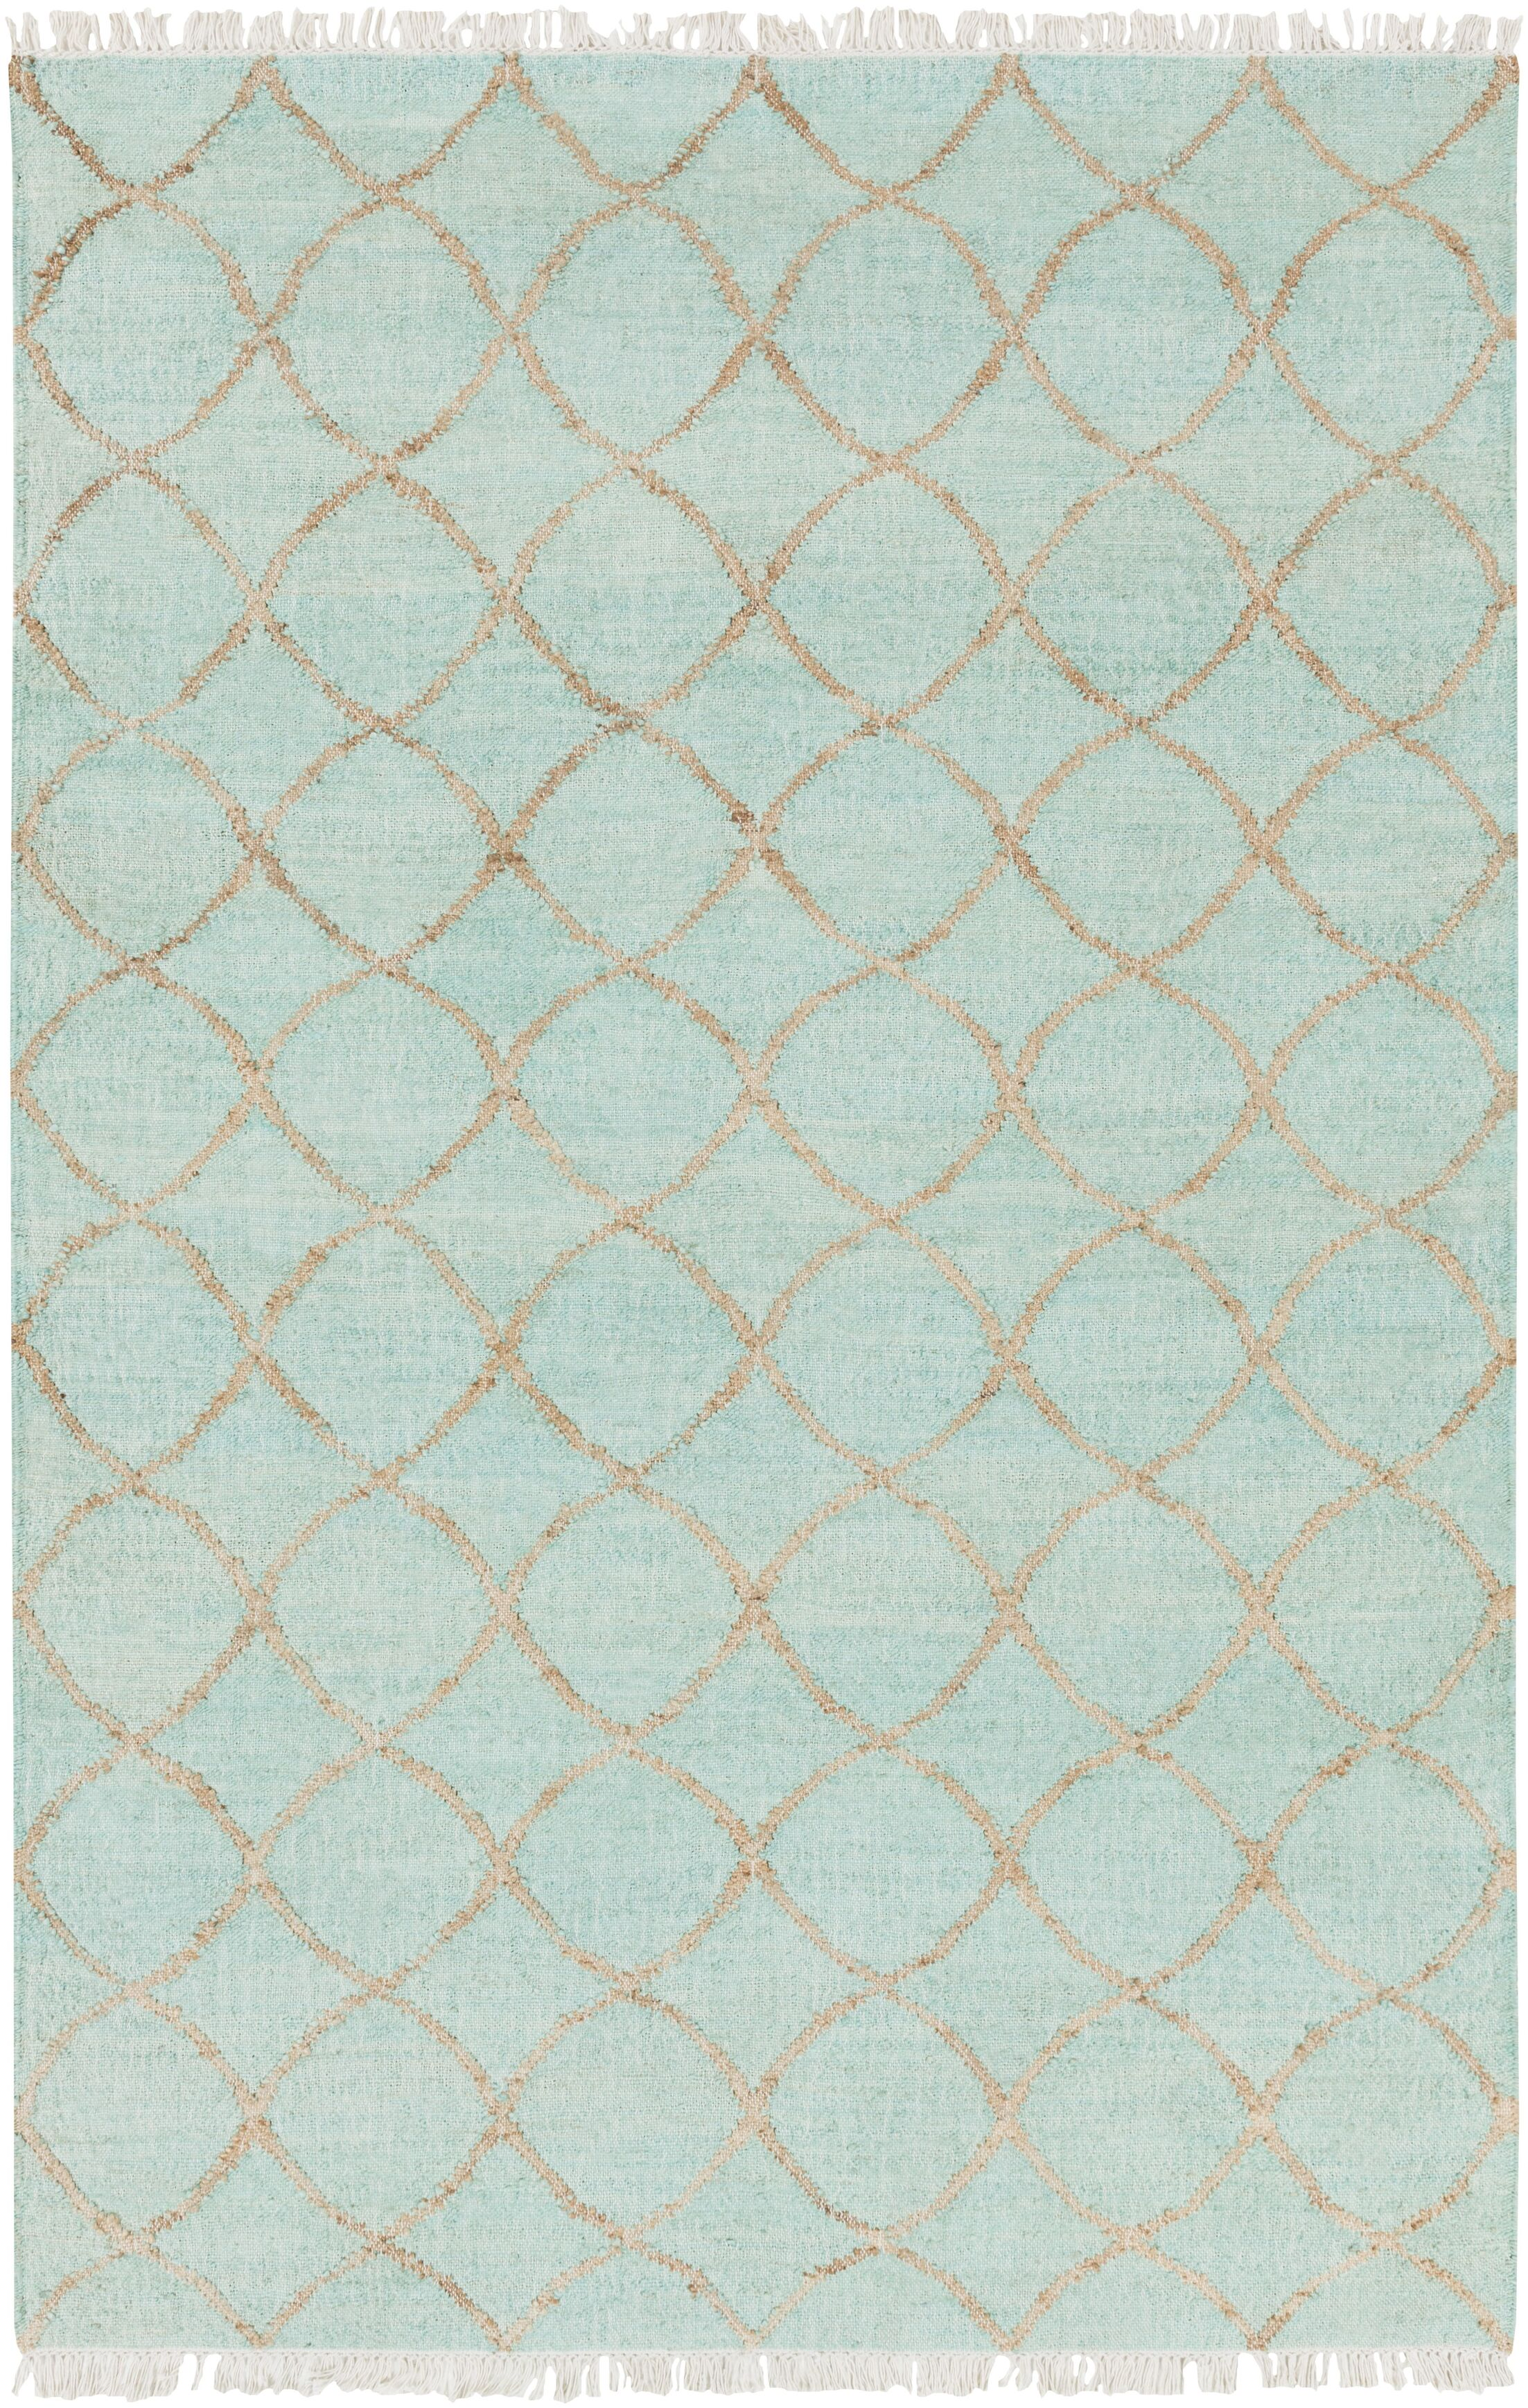 Ravenstein Hand-Woven Blue Area Rug Rug Size: Rectangle 5' x 7'6